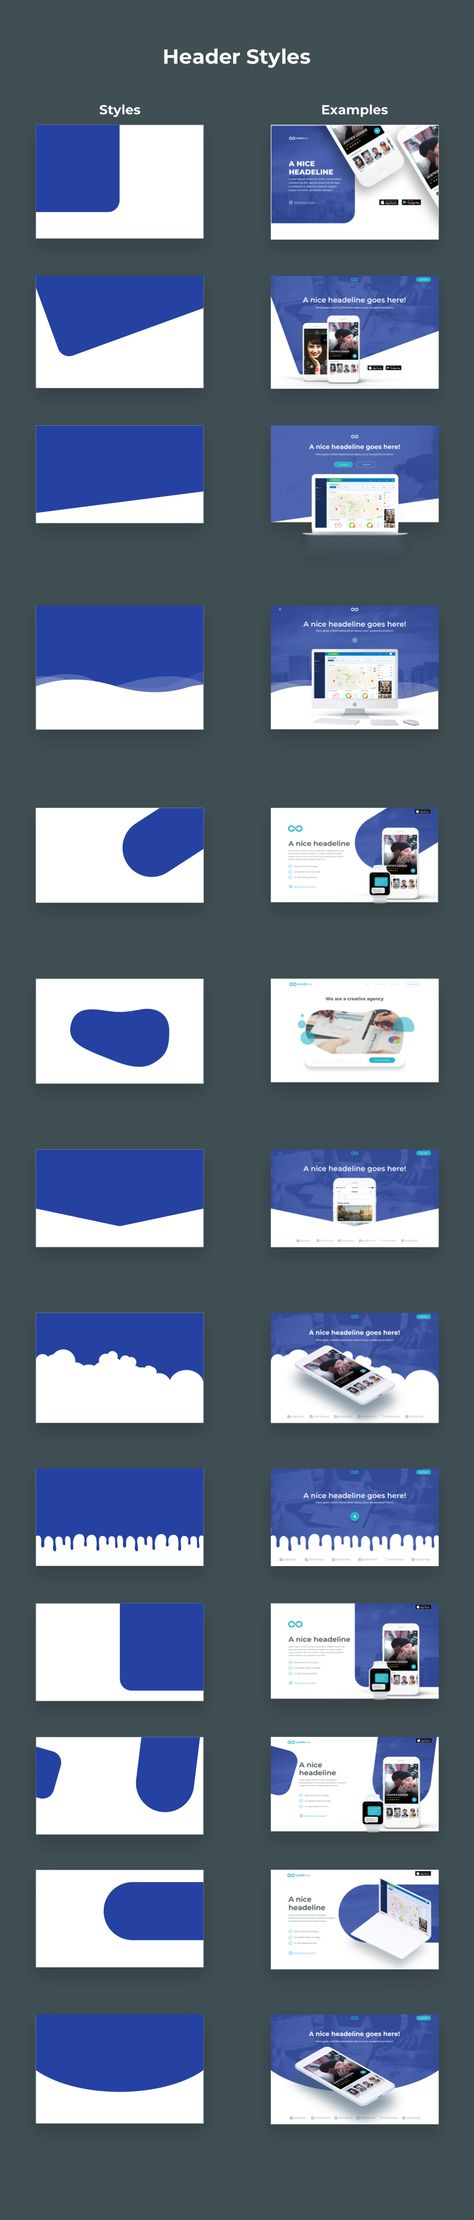 Limitless - Massive set of layouts and UI components for Sketch Preview